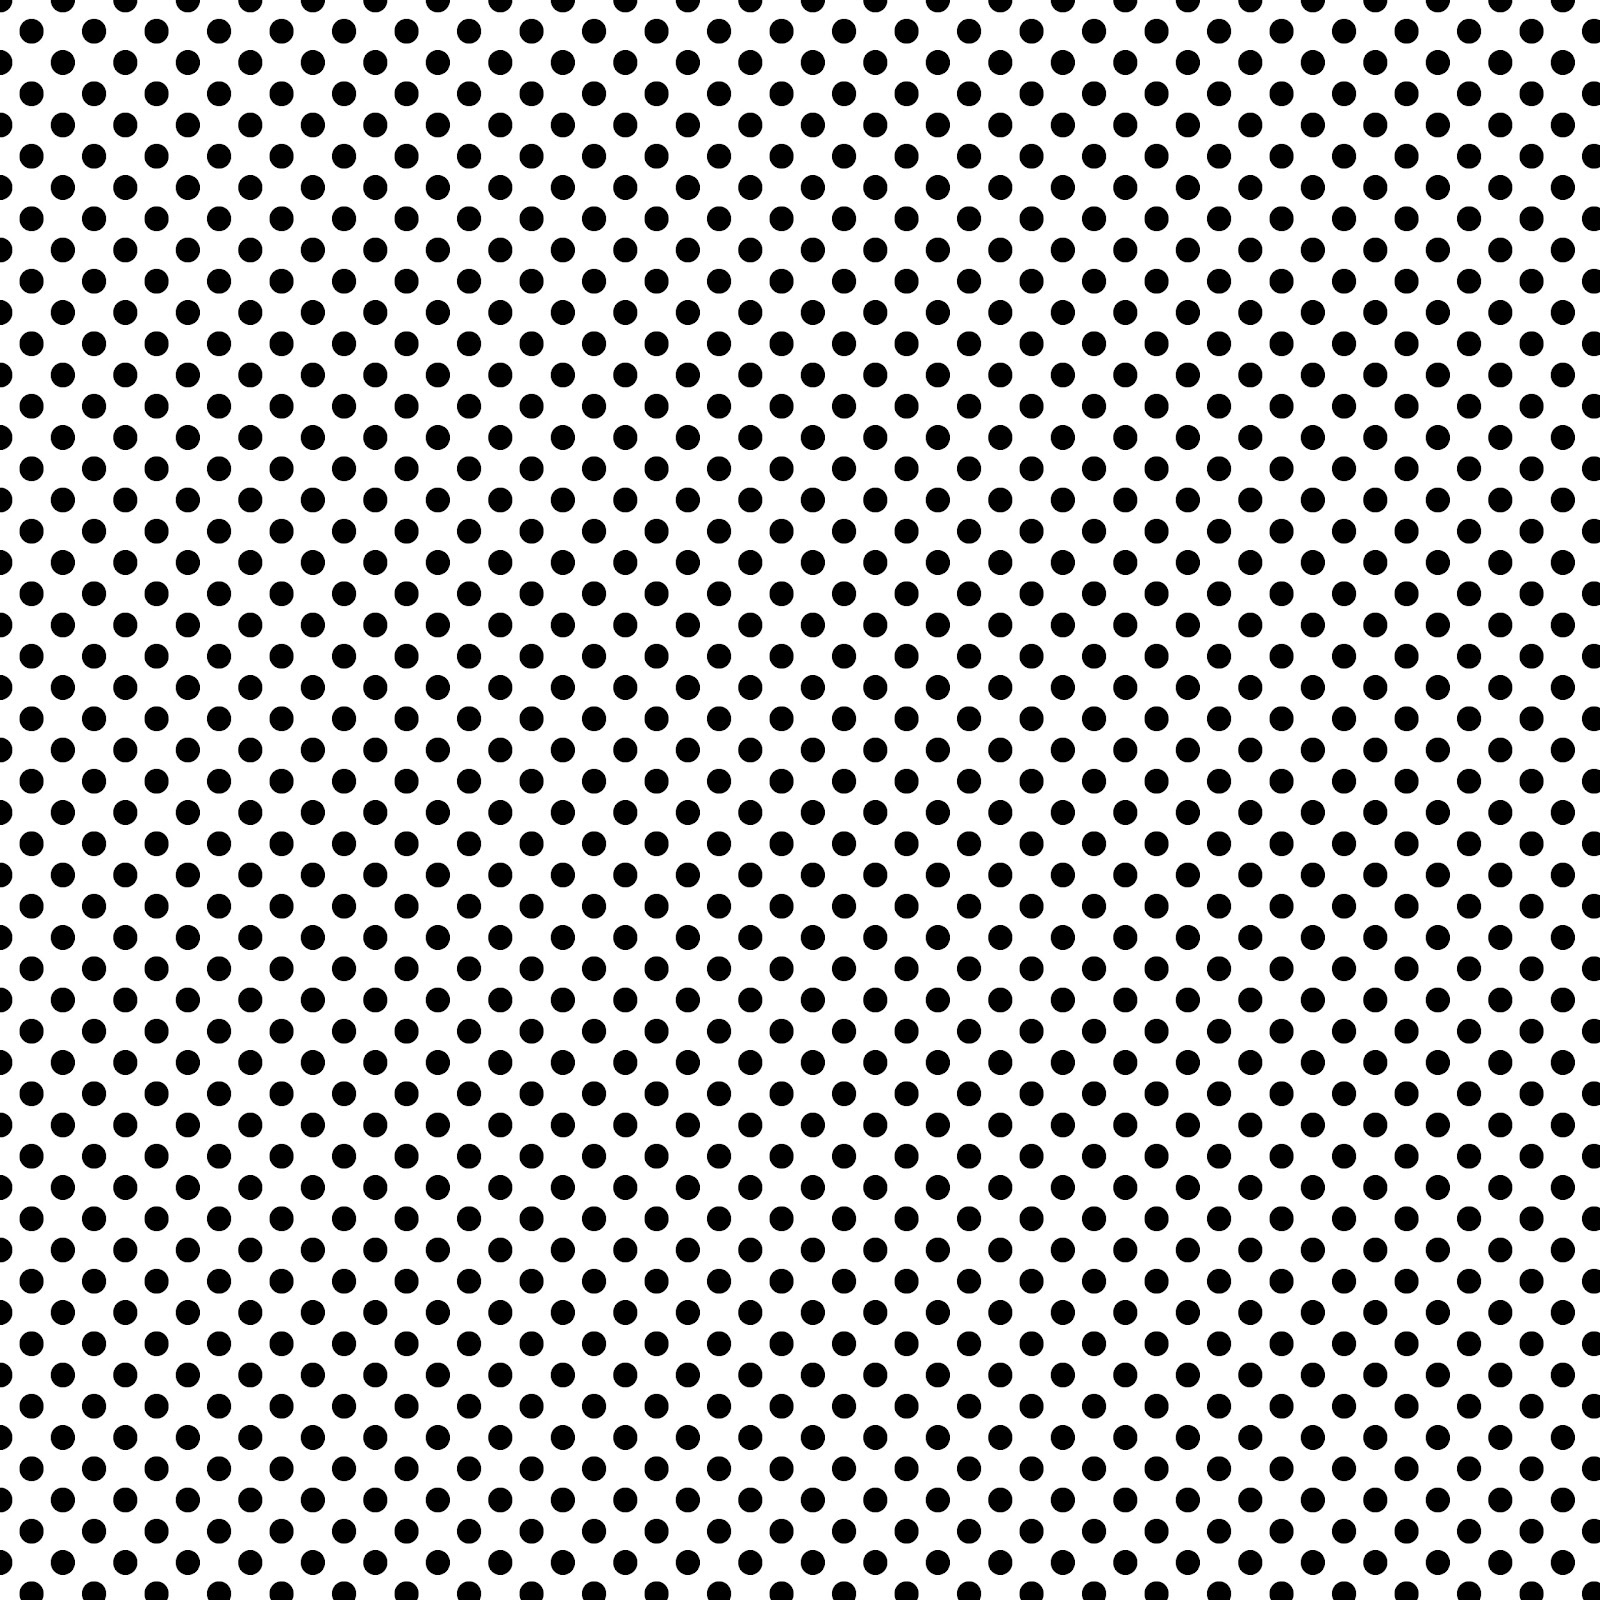 Dots Pics, Abstract Collection